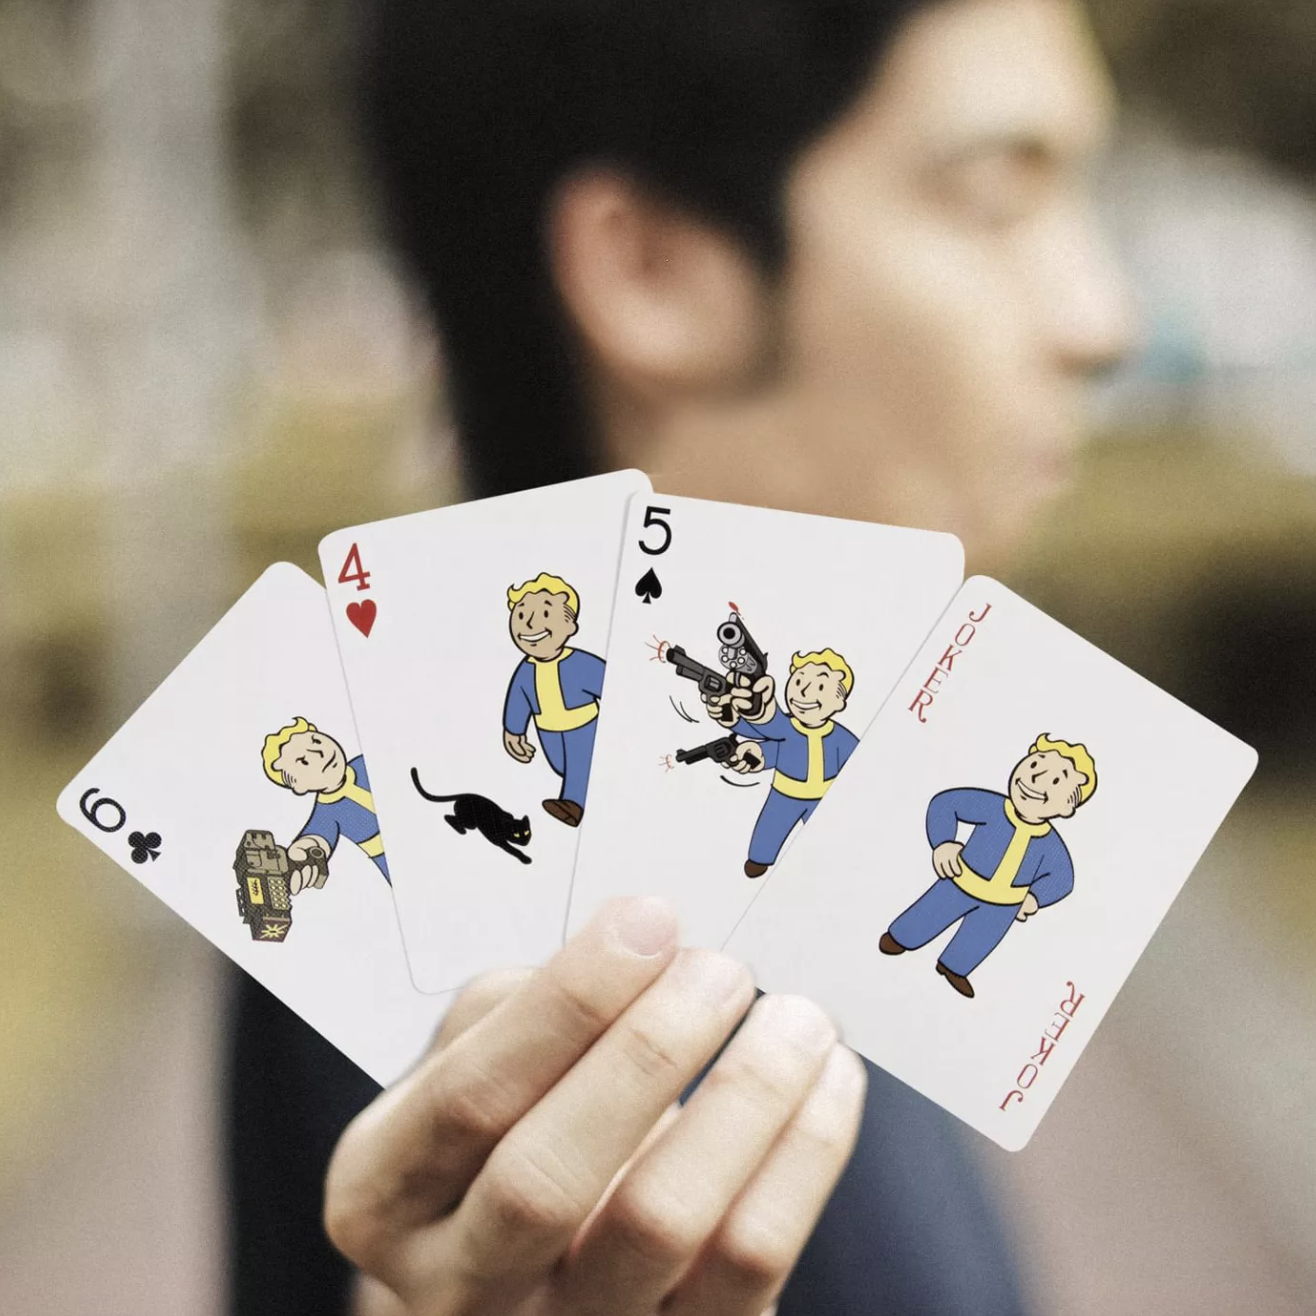 a model holding up four of the cards